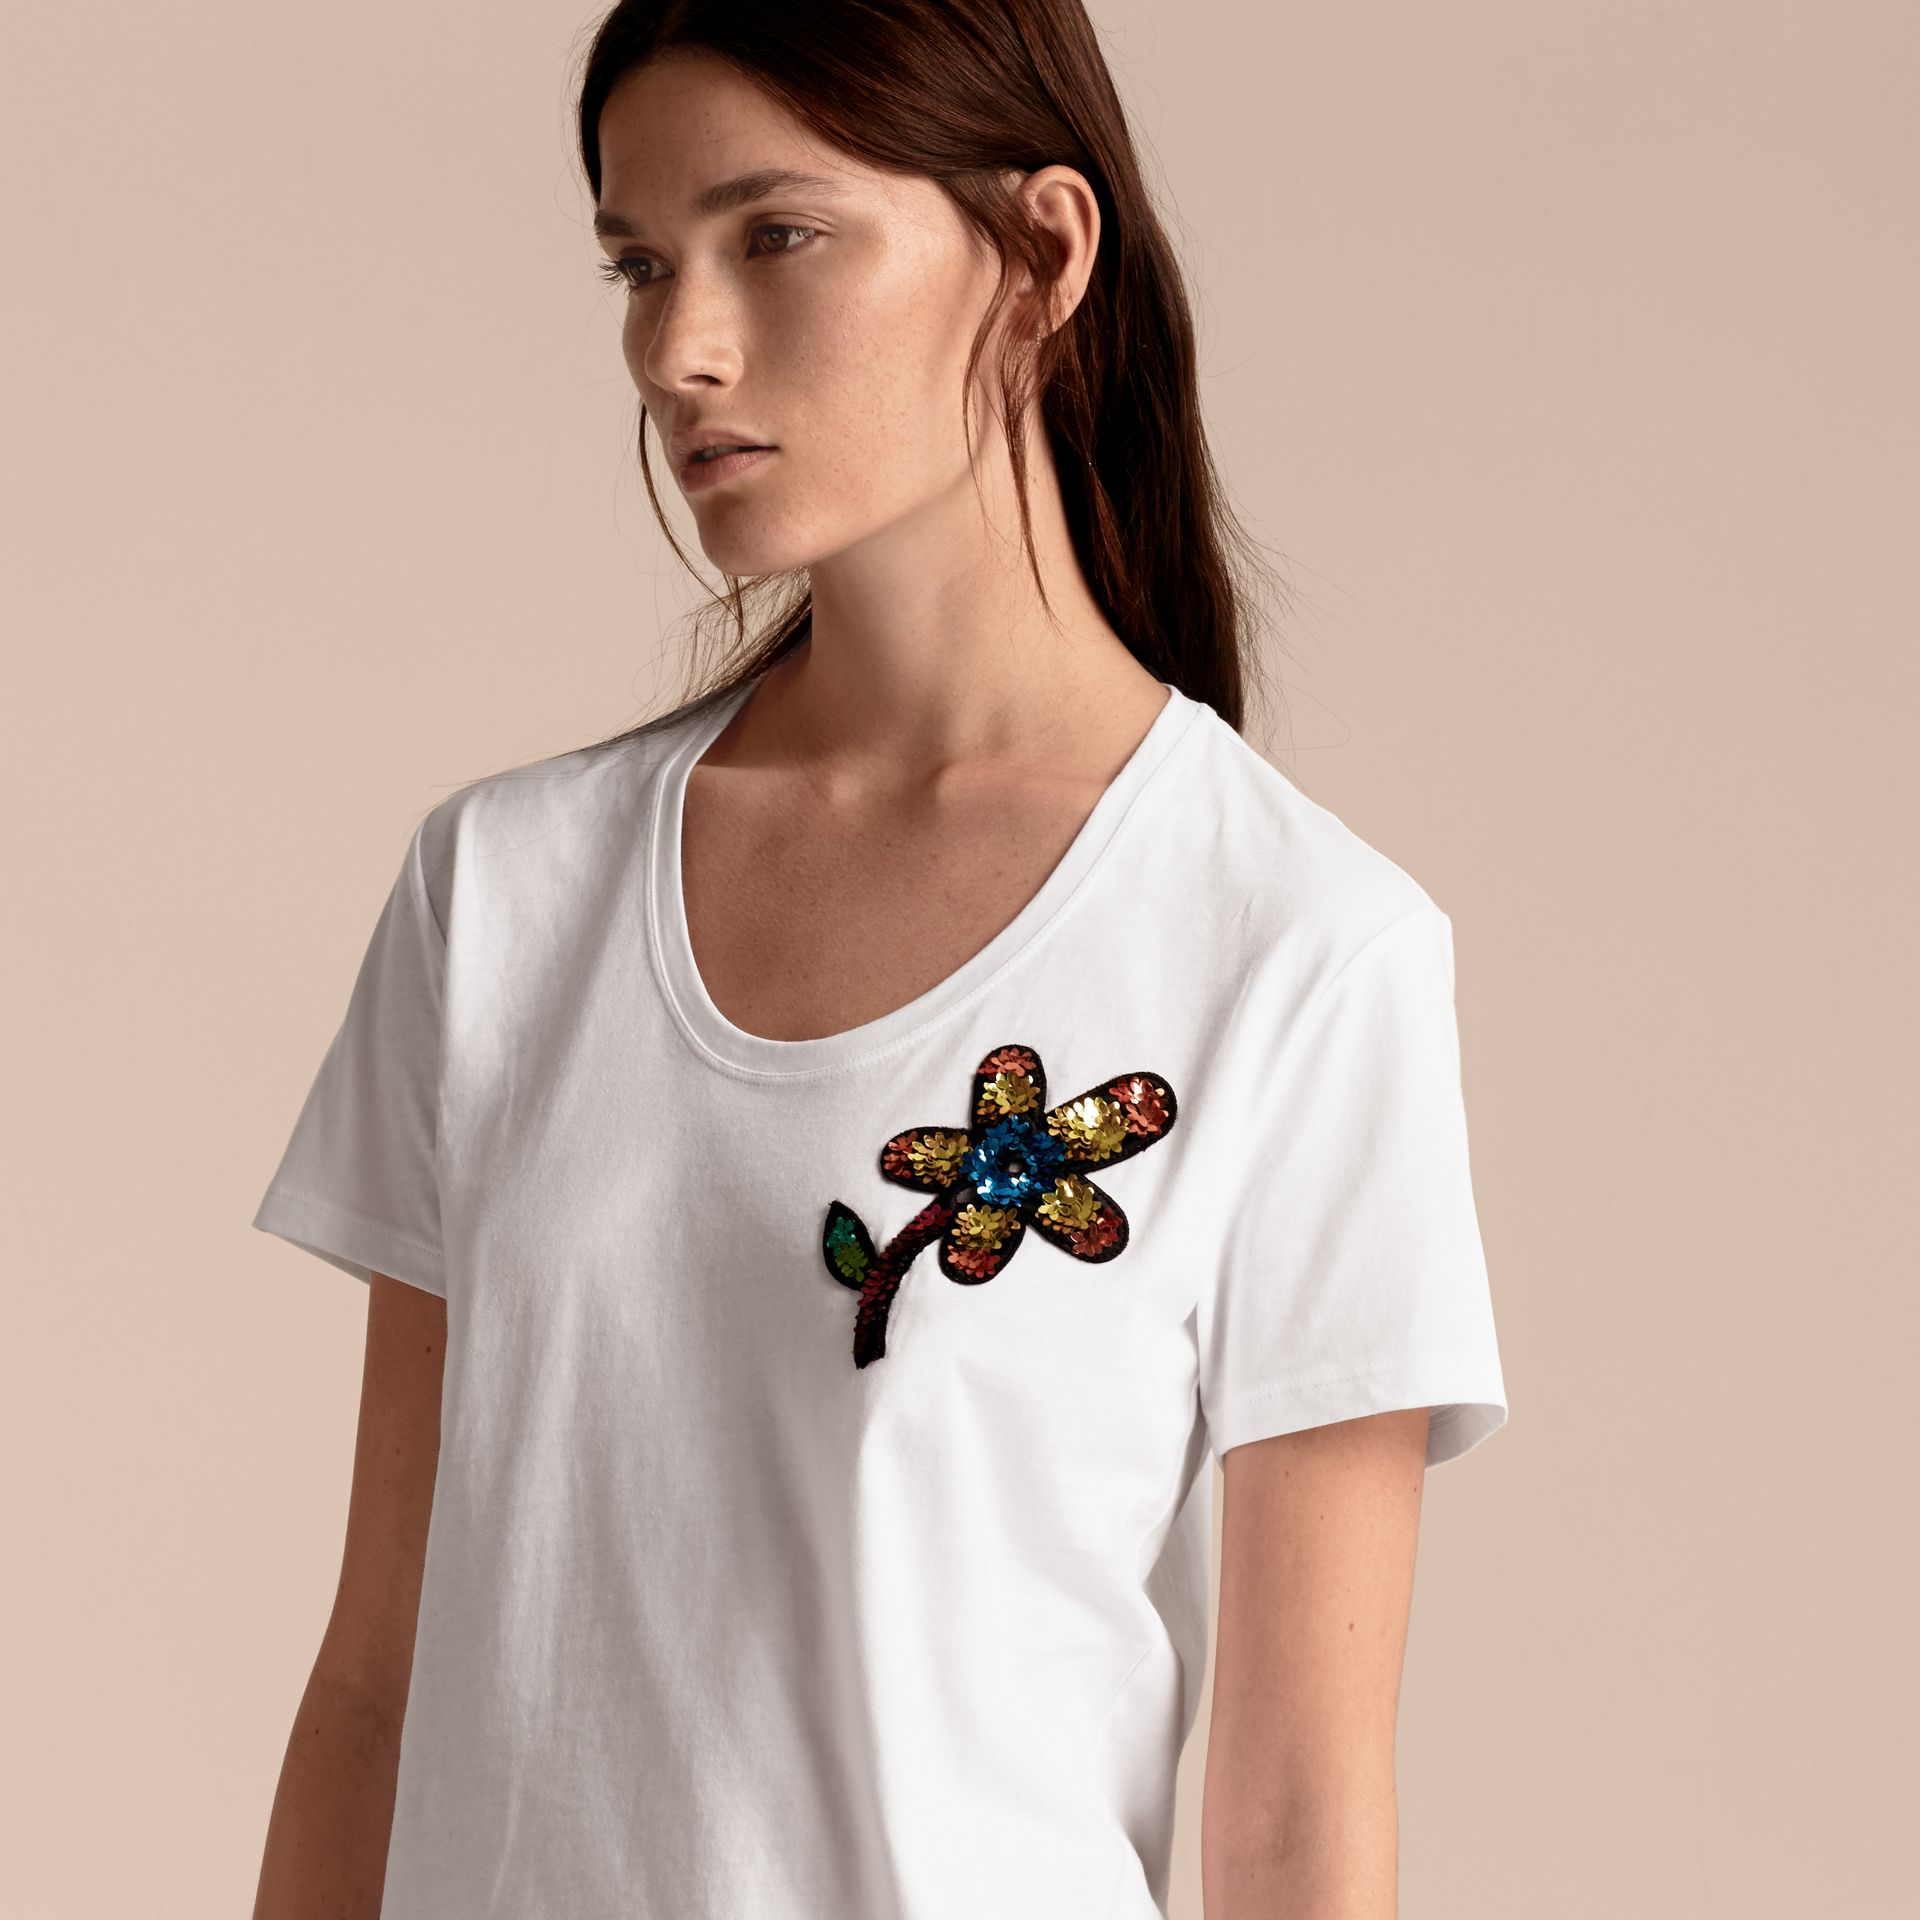 White Sequin Floral Appliqué Cotton T-Shirt White - gallery image 6